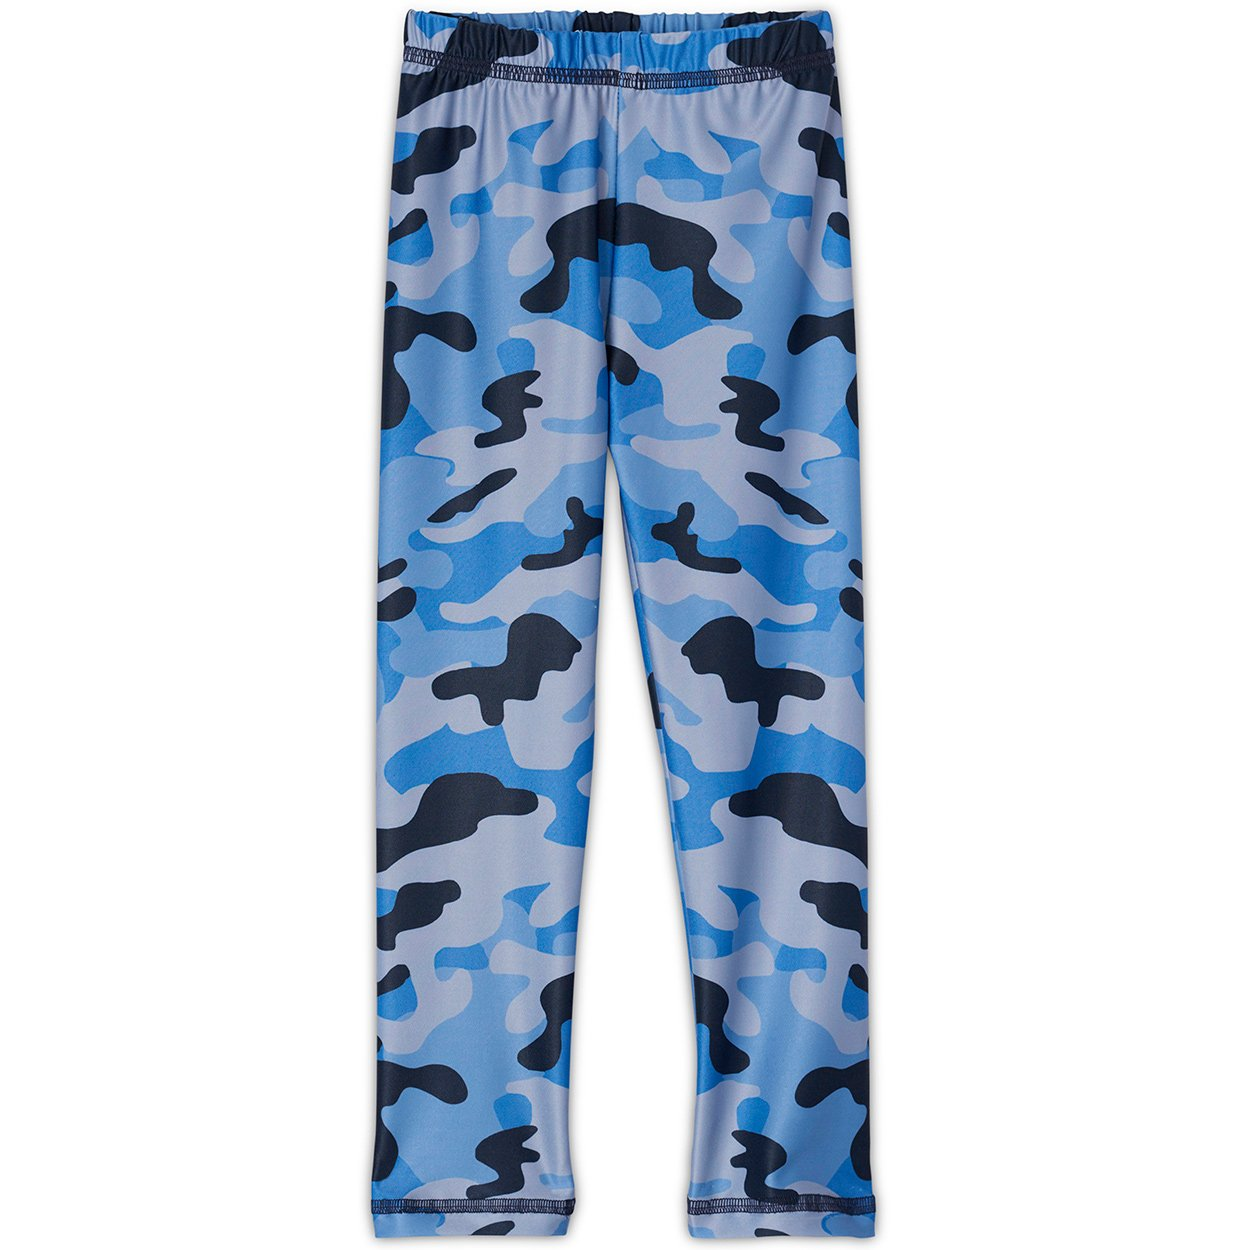 Blue Camo Leggings UPF 50+